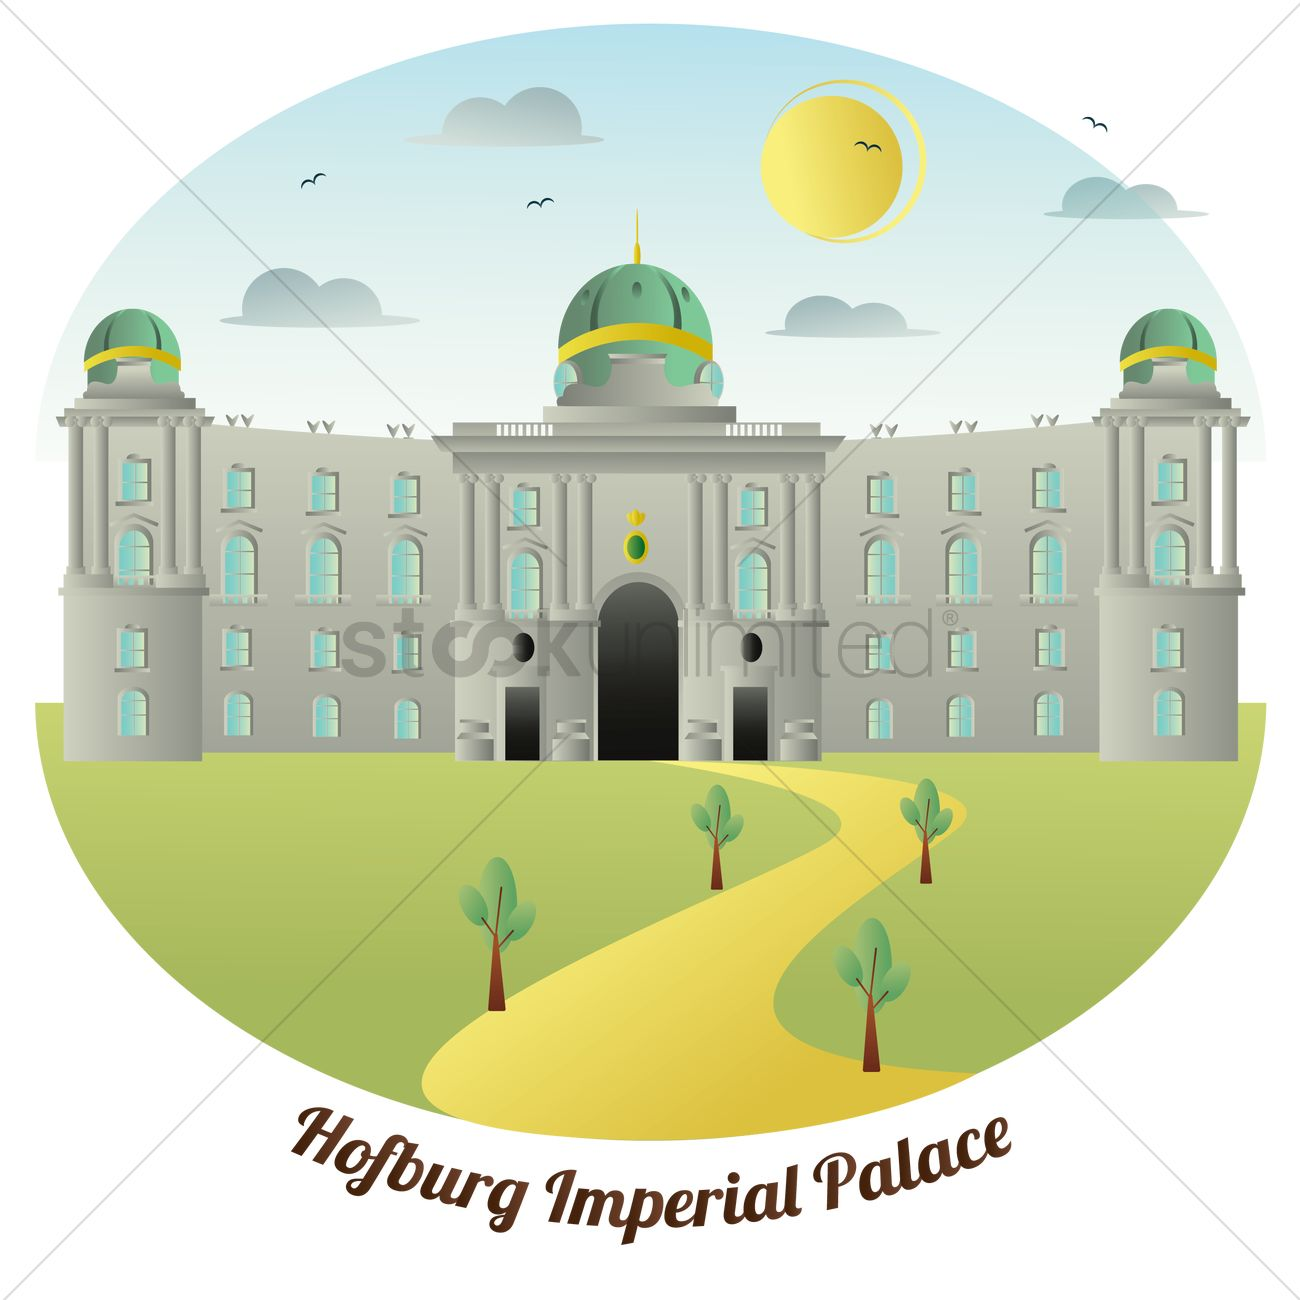 Hofburg imperial palace Vector Image.